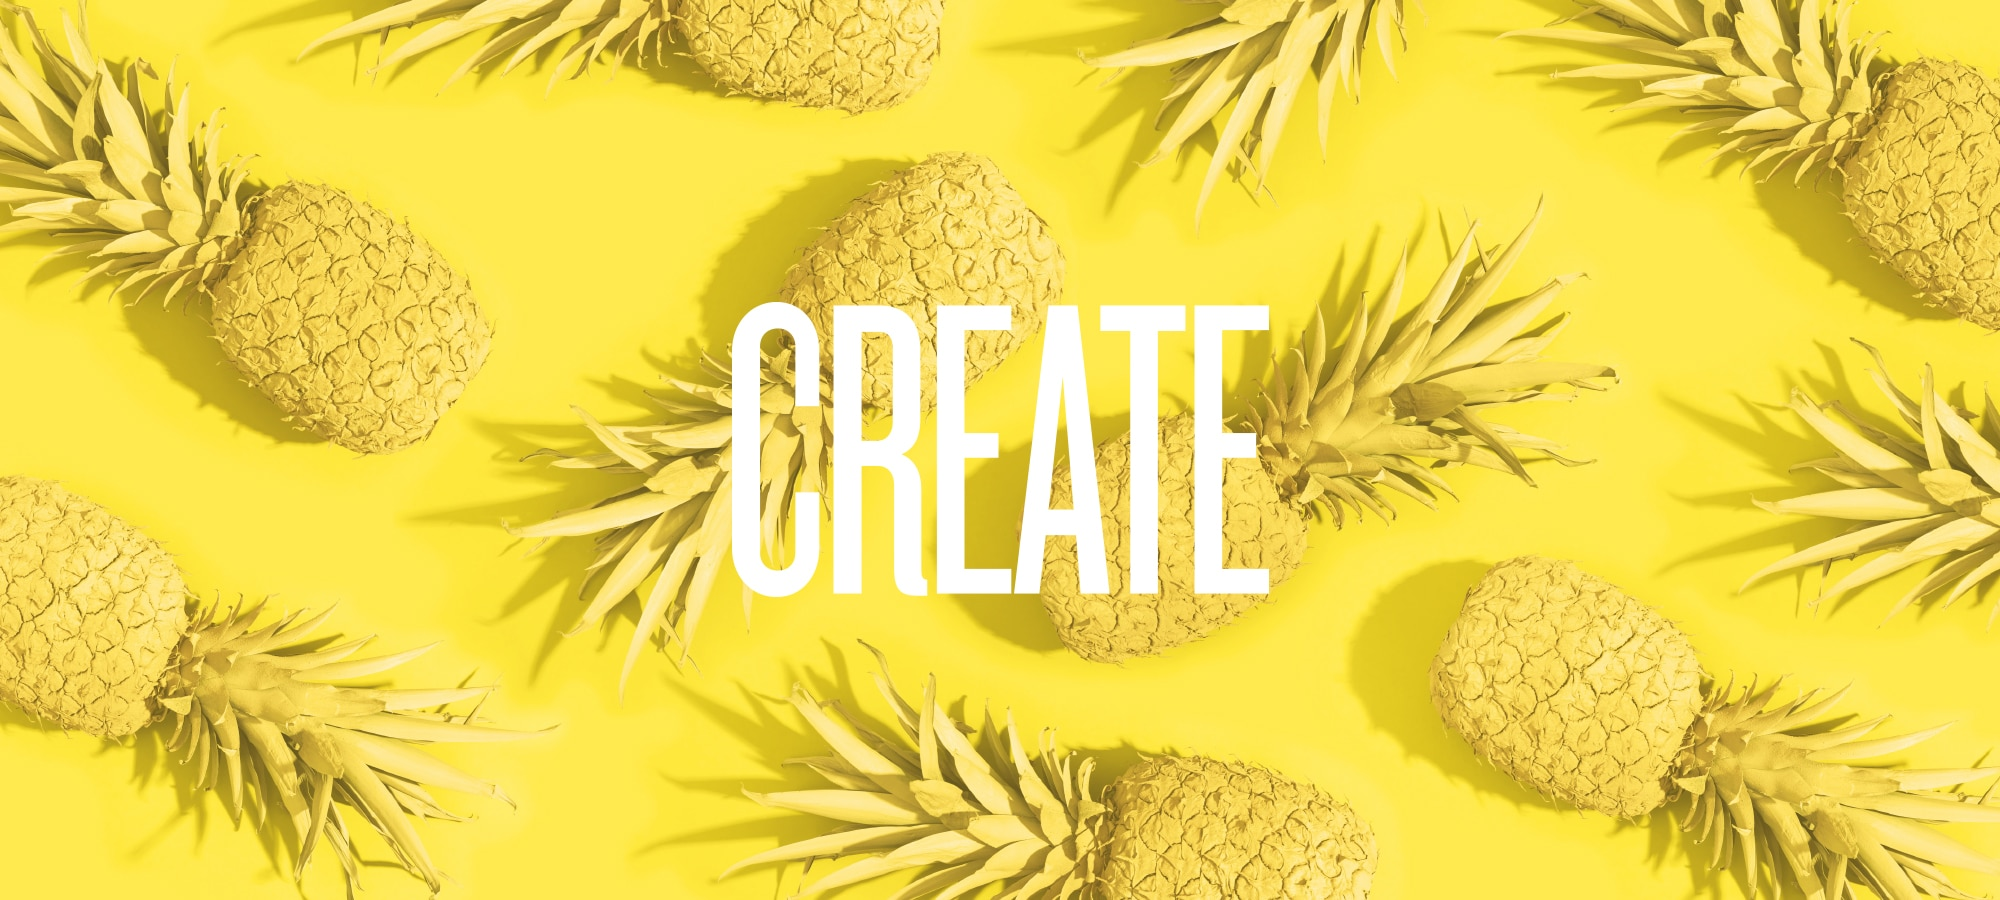 Giant Create above pineapple background